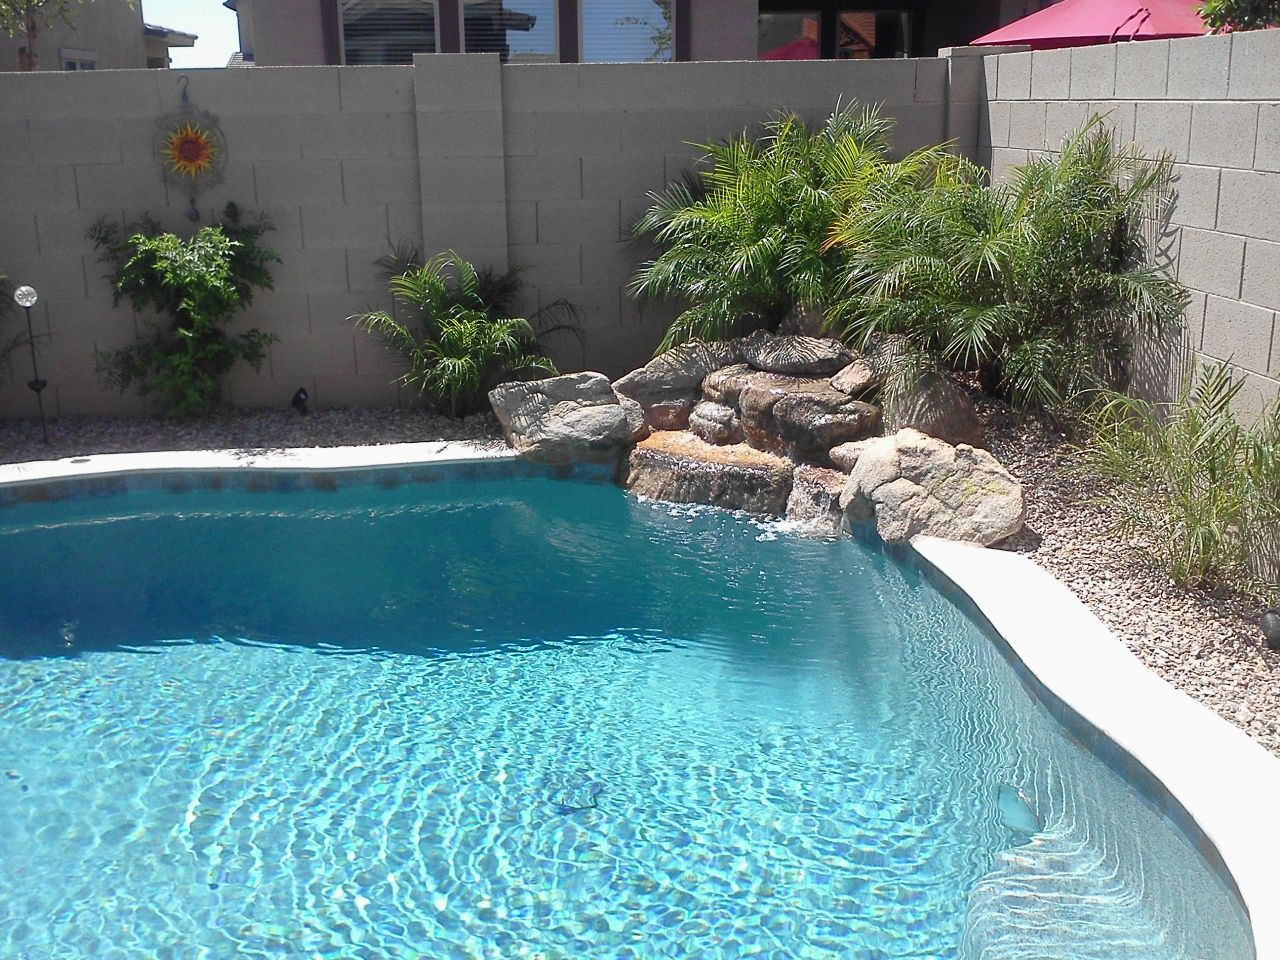 Nothing Makes Your Pool Pop Like A Unique Water Feature Description From Natlpools Co Inground Pool Landscaping Pool Water Features Pool Waterfall Landscaping